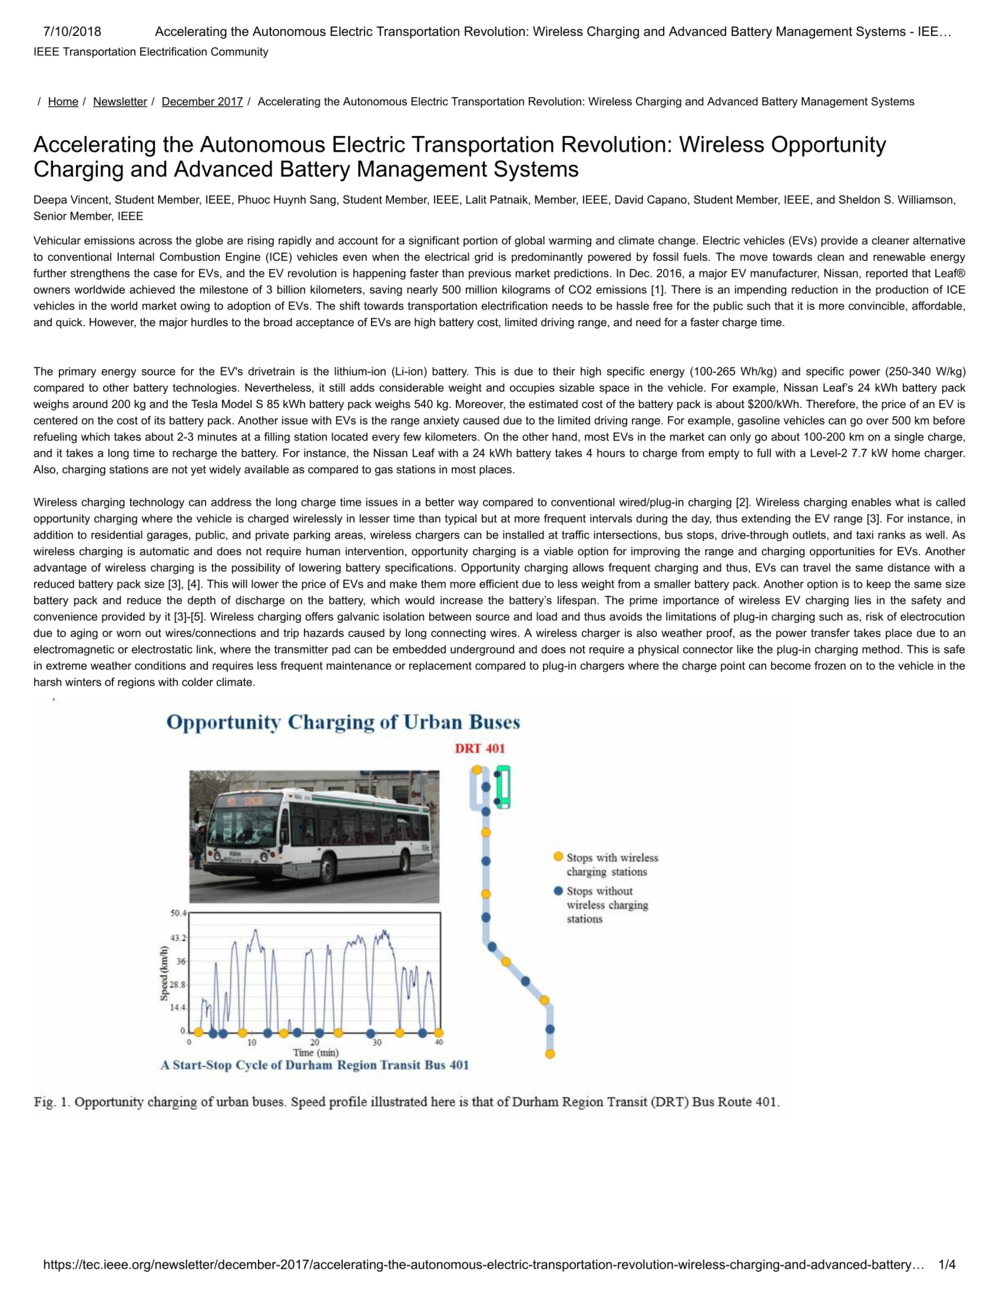 Accelerating the Autonomous Electric Transportation Revolution_ Wireless Charging and Advanced Battery Management Systems - IEEE Transportation Electrification Community-1.png